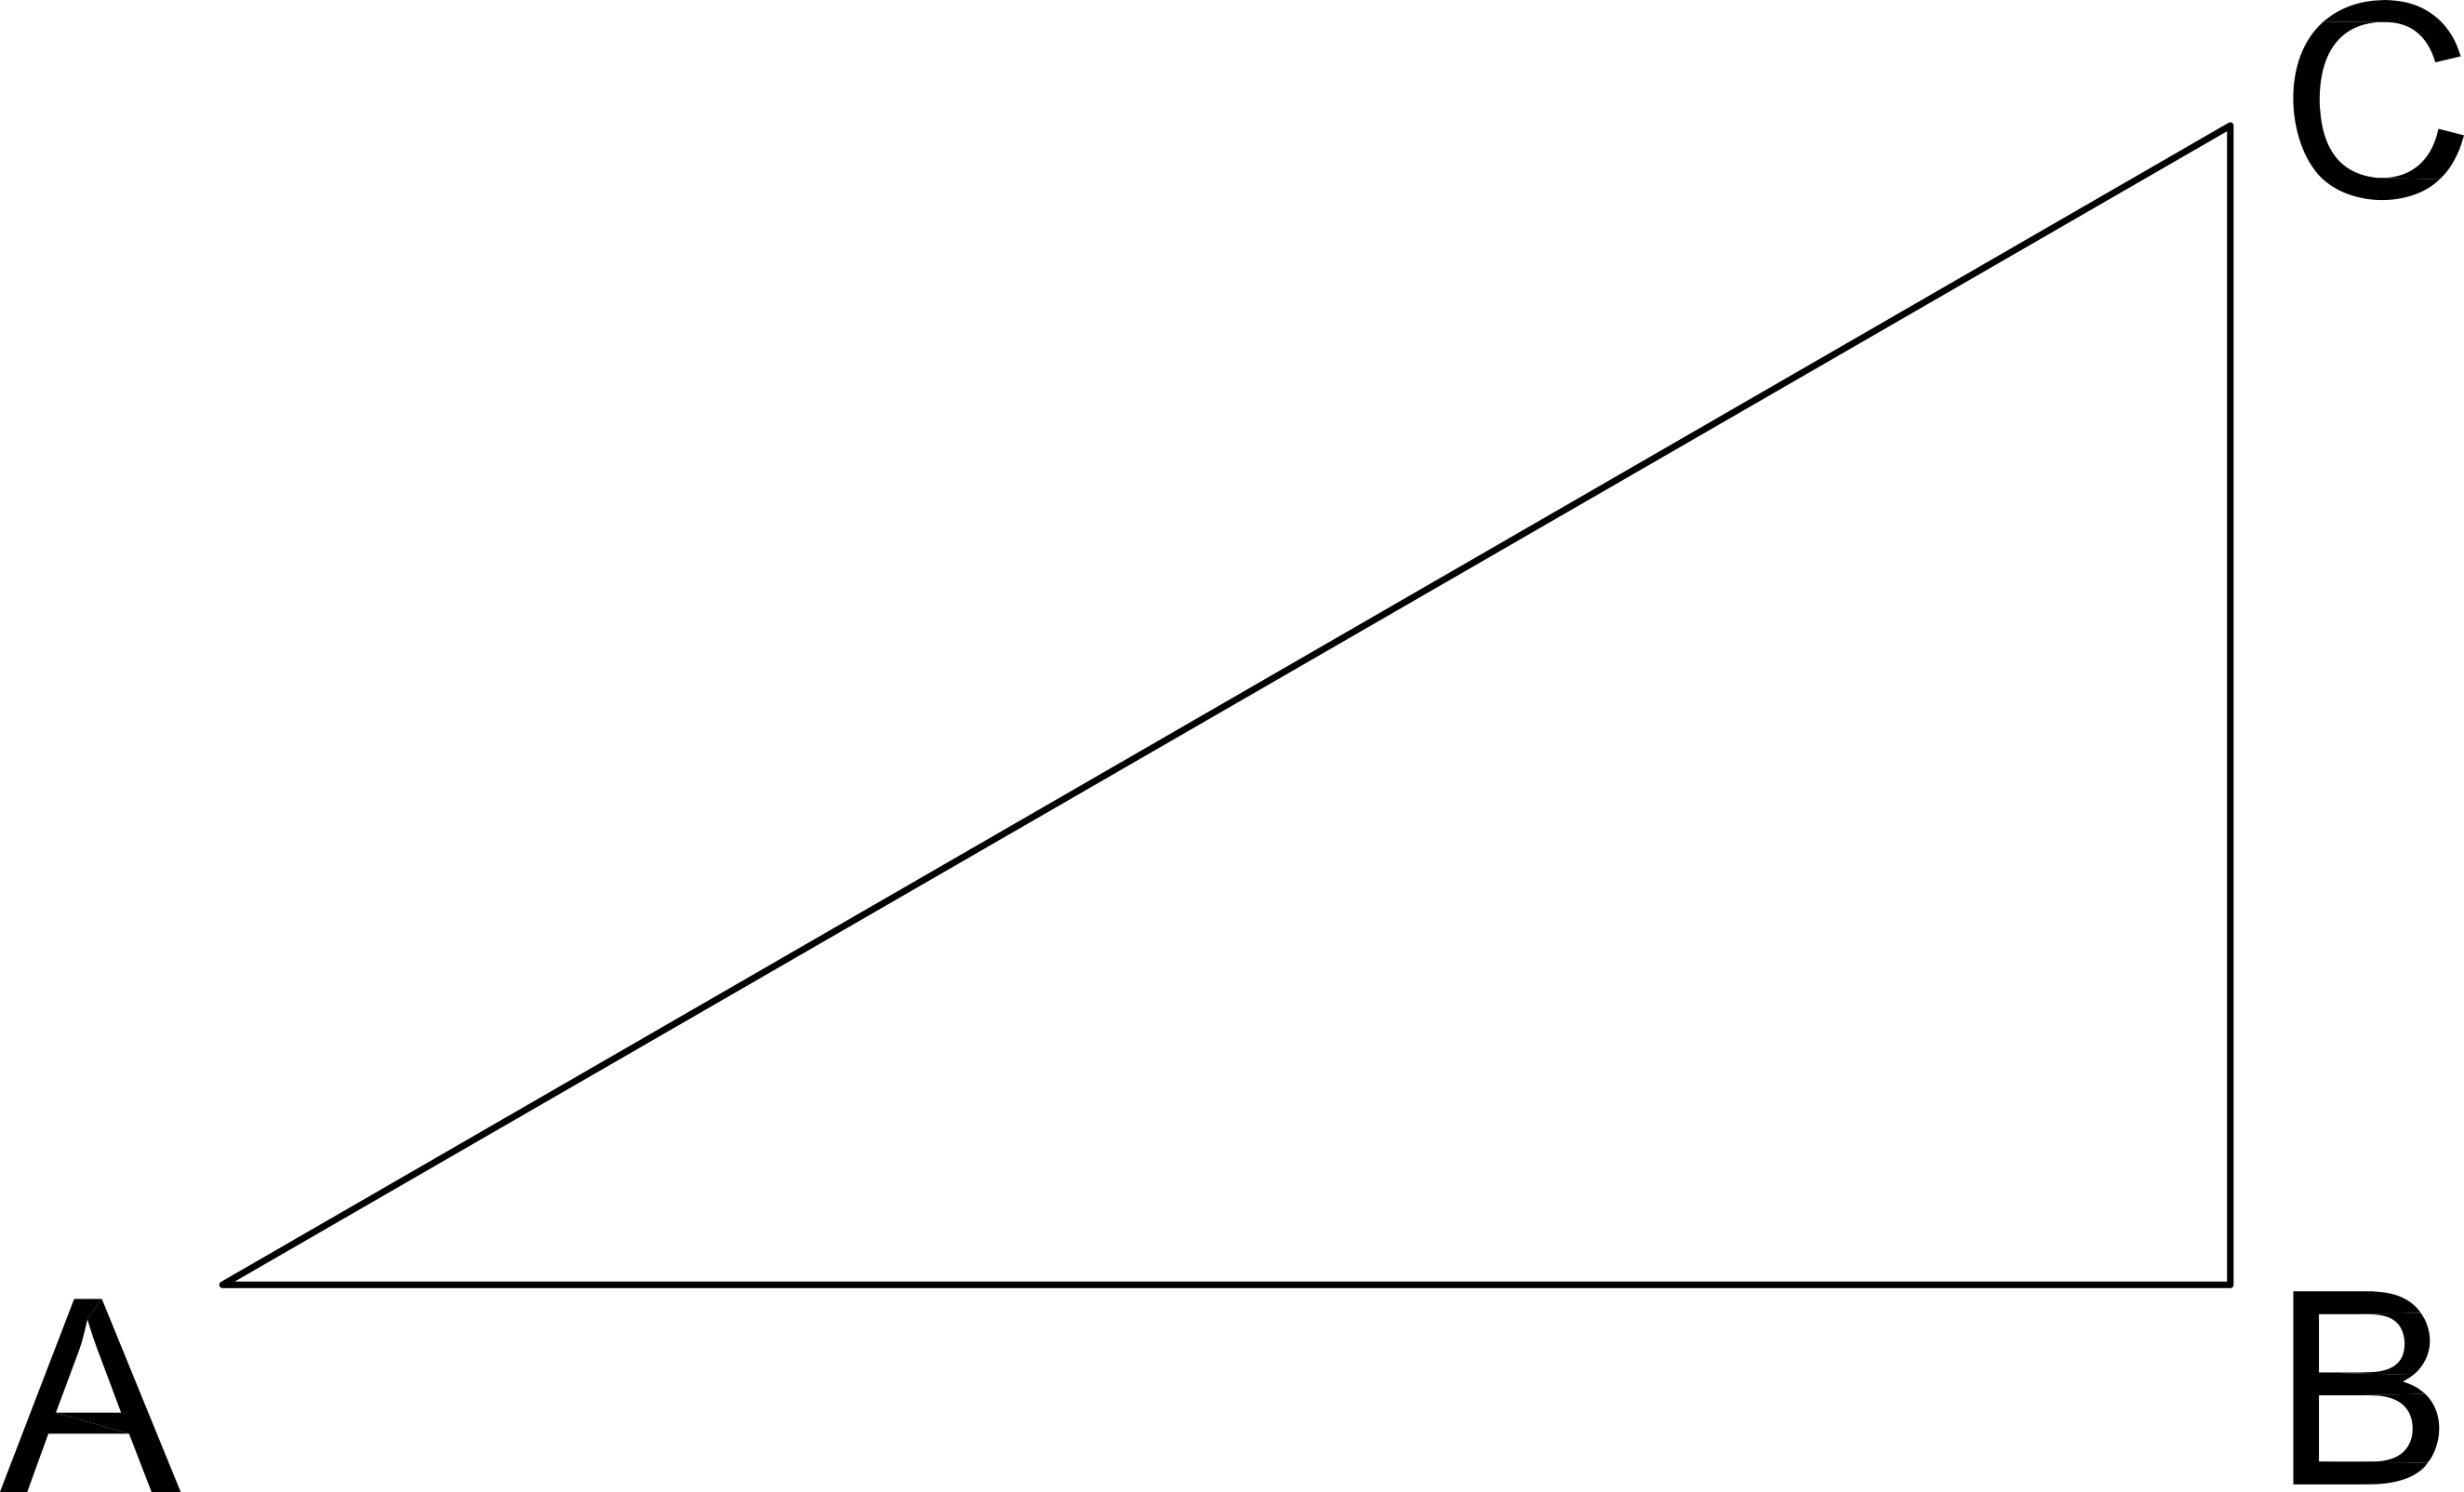 How To Find The Tangent Of An Angle